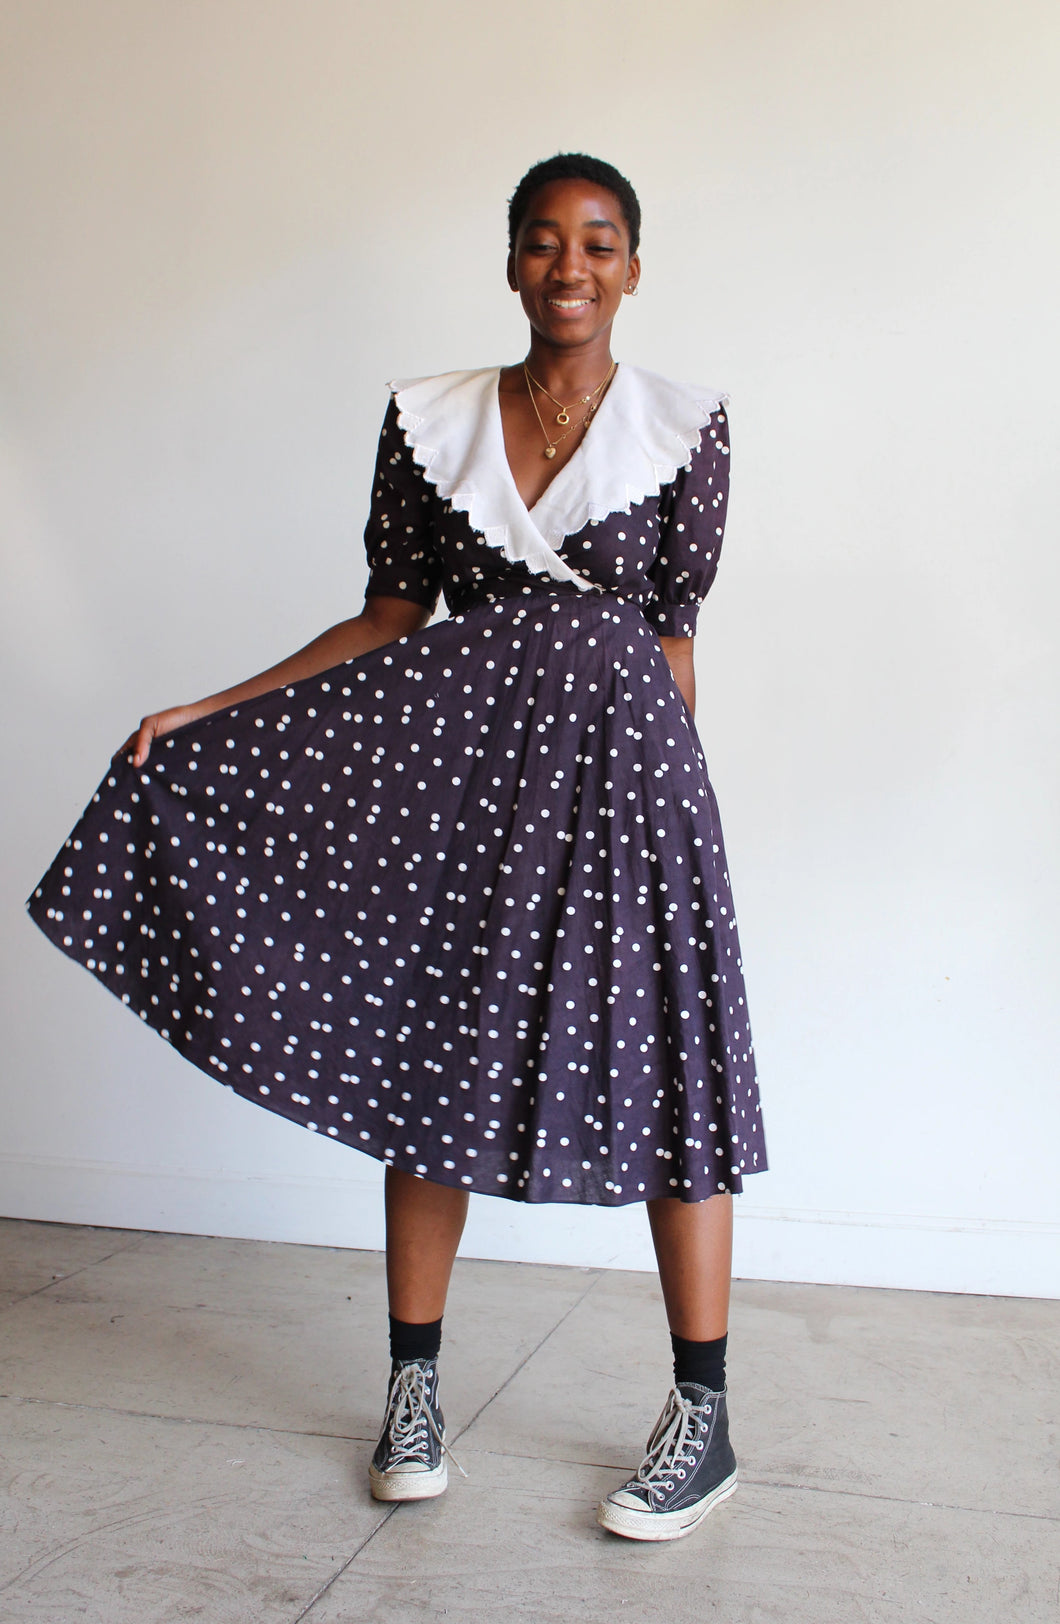 1980s B&W Polkadots Cotton Dress with White Scalloped Collar